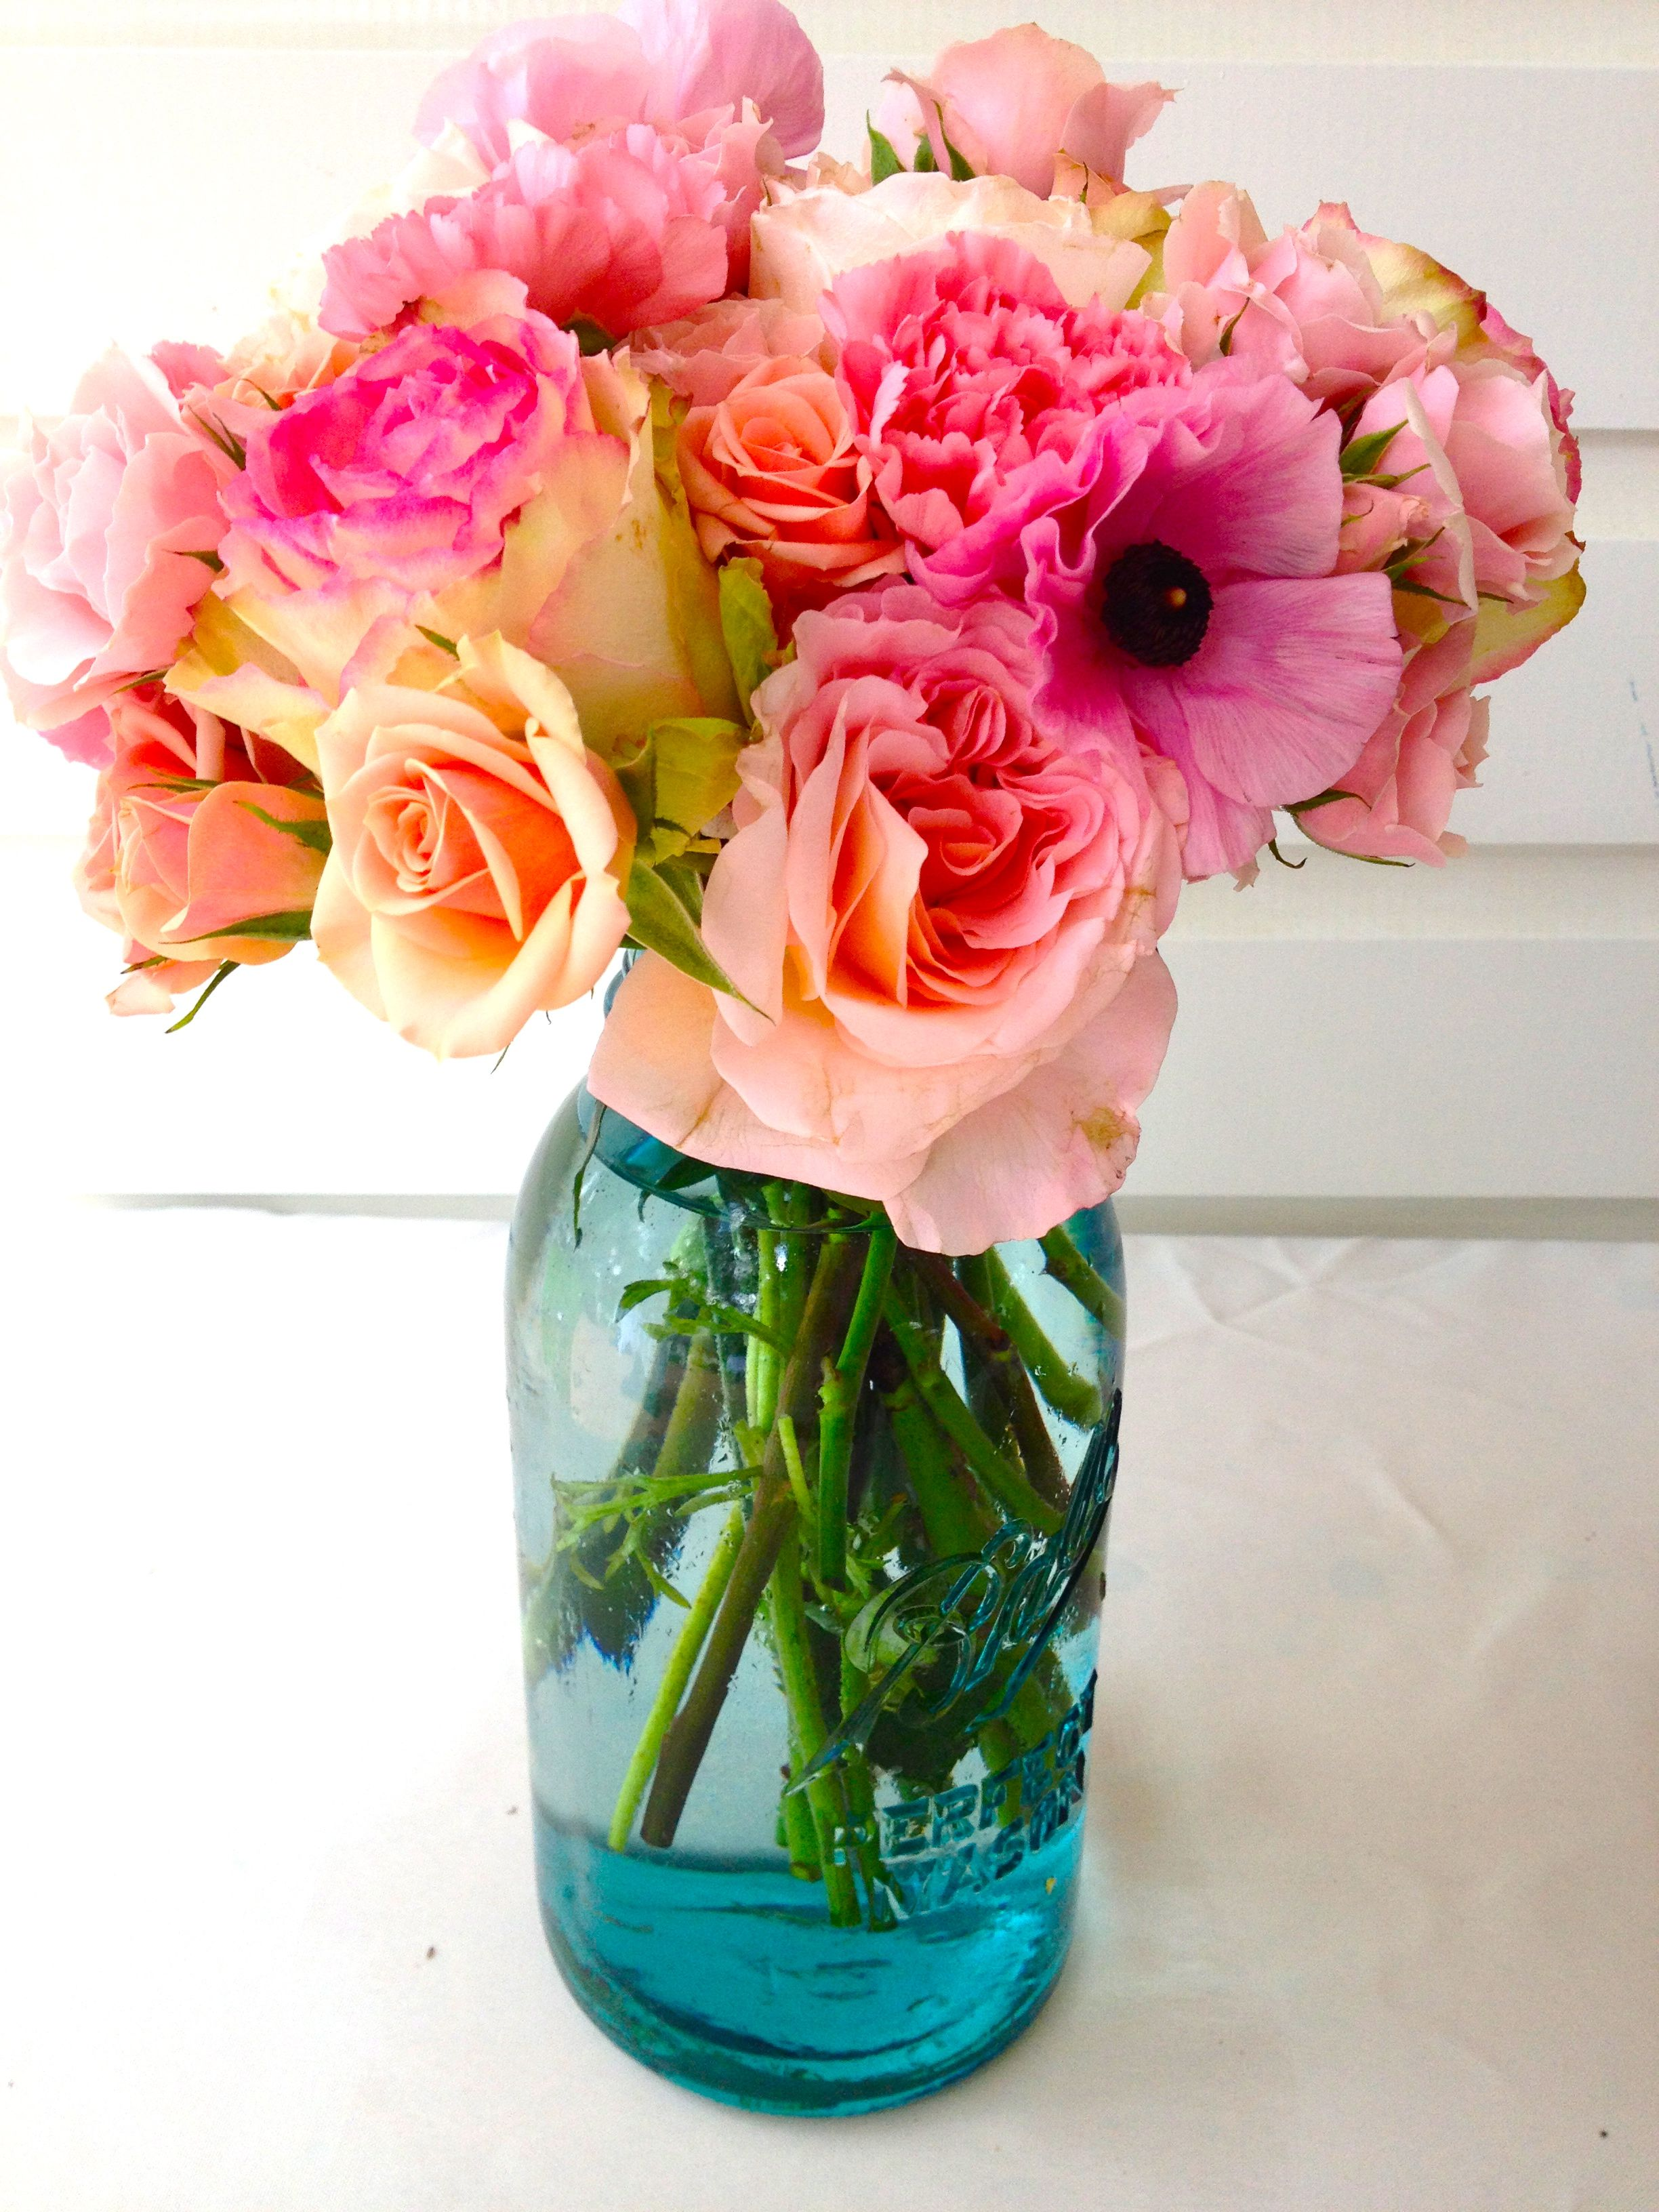 this gorgeous flower arrangement compliments the cool hues of the